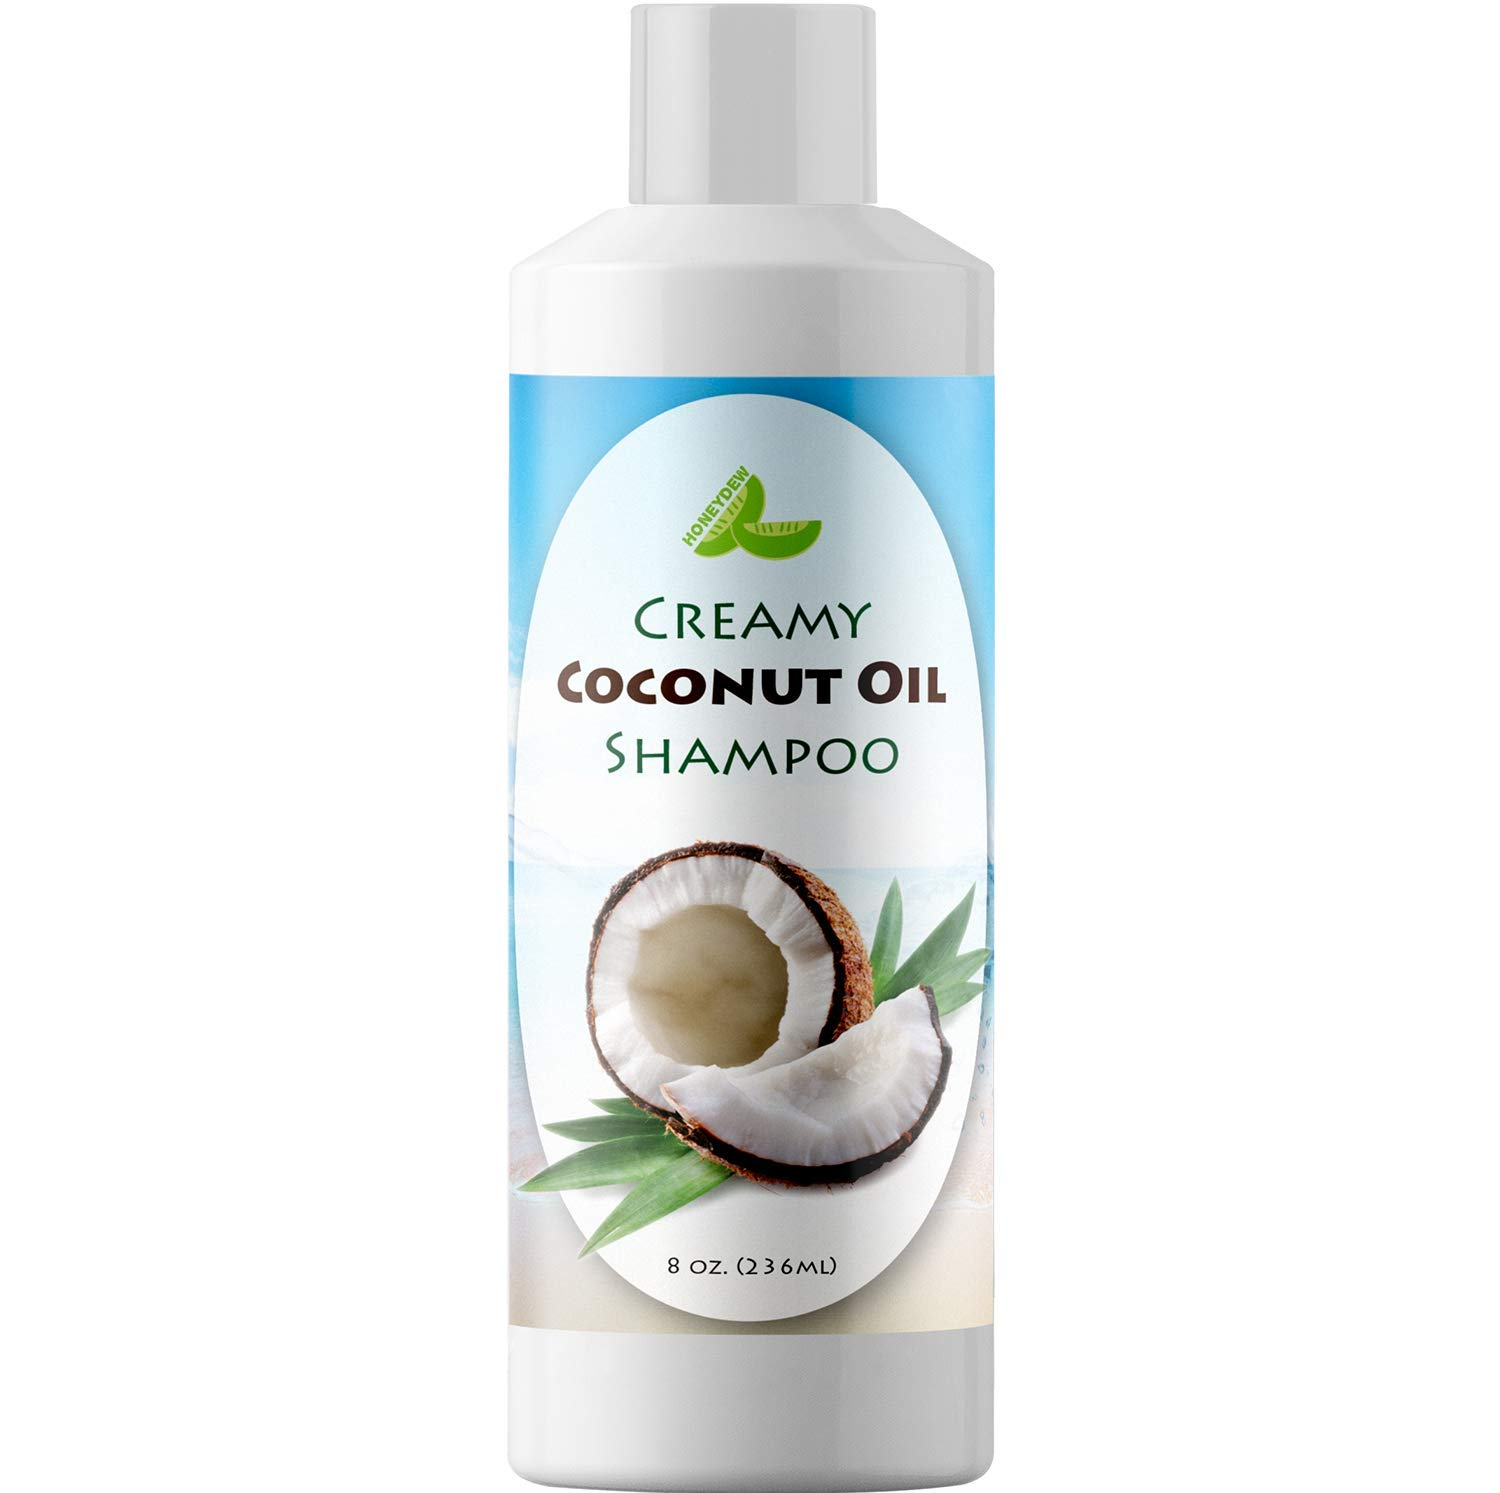 All Natural Coconut Oil Shampoo for Hair Growth - Hair Regrowth Treatment for Men and Women - Best Sulfate Free Moisturizing Shampoo - Safe for Color Treated Hair - Nourishing Hair and Scalp Treatment by Honeydew (Image #6)